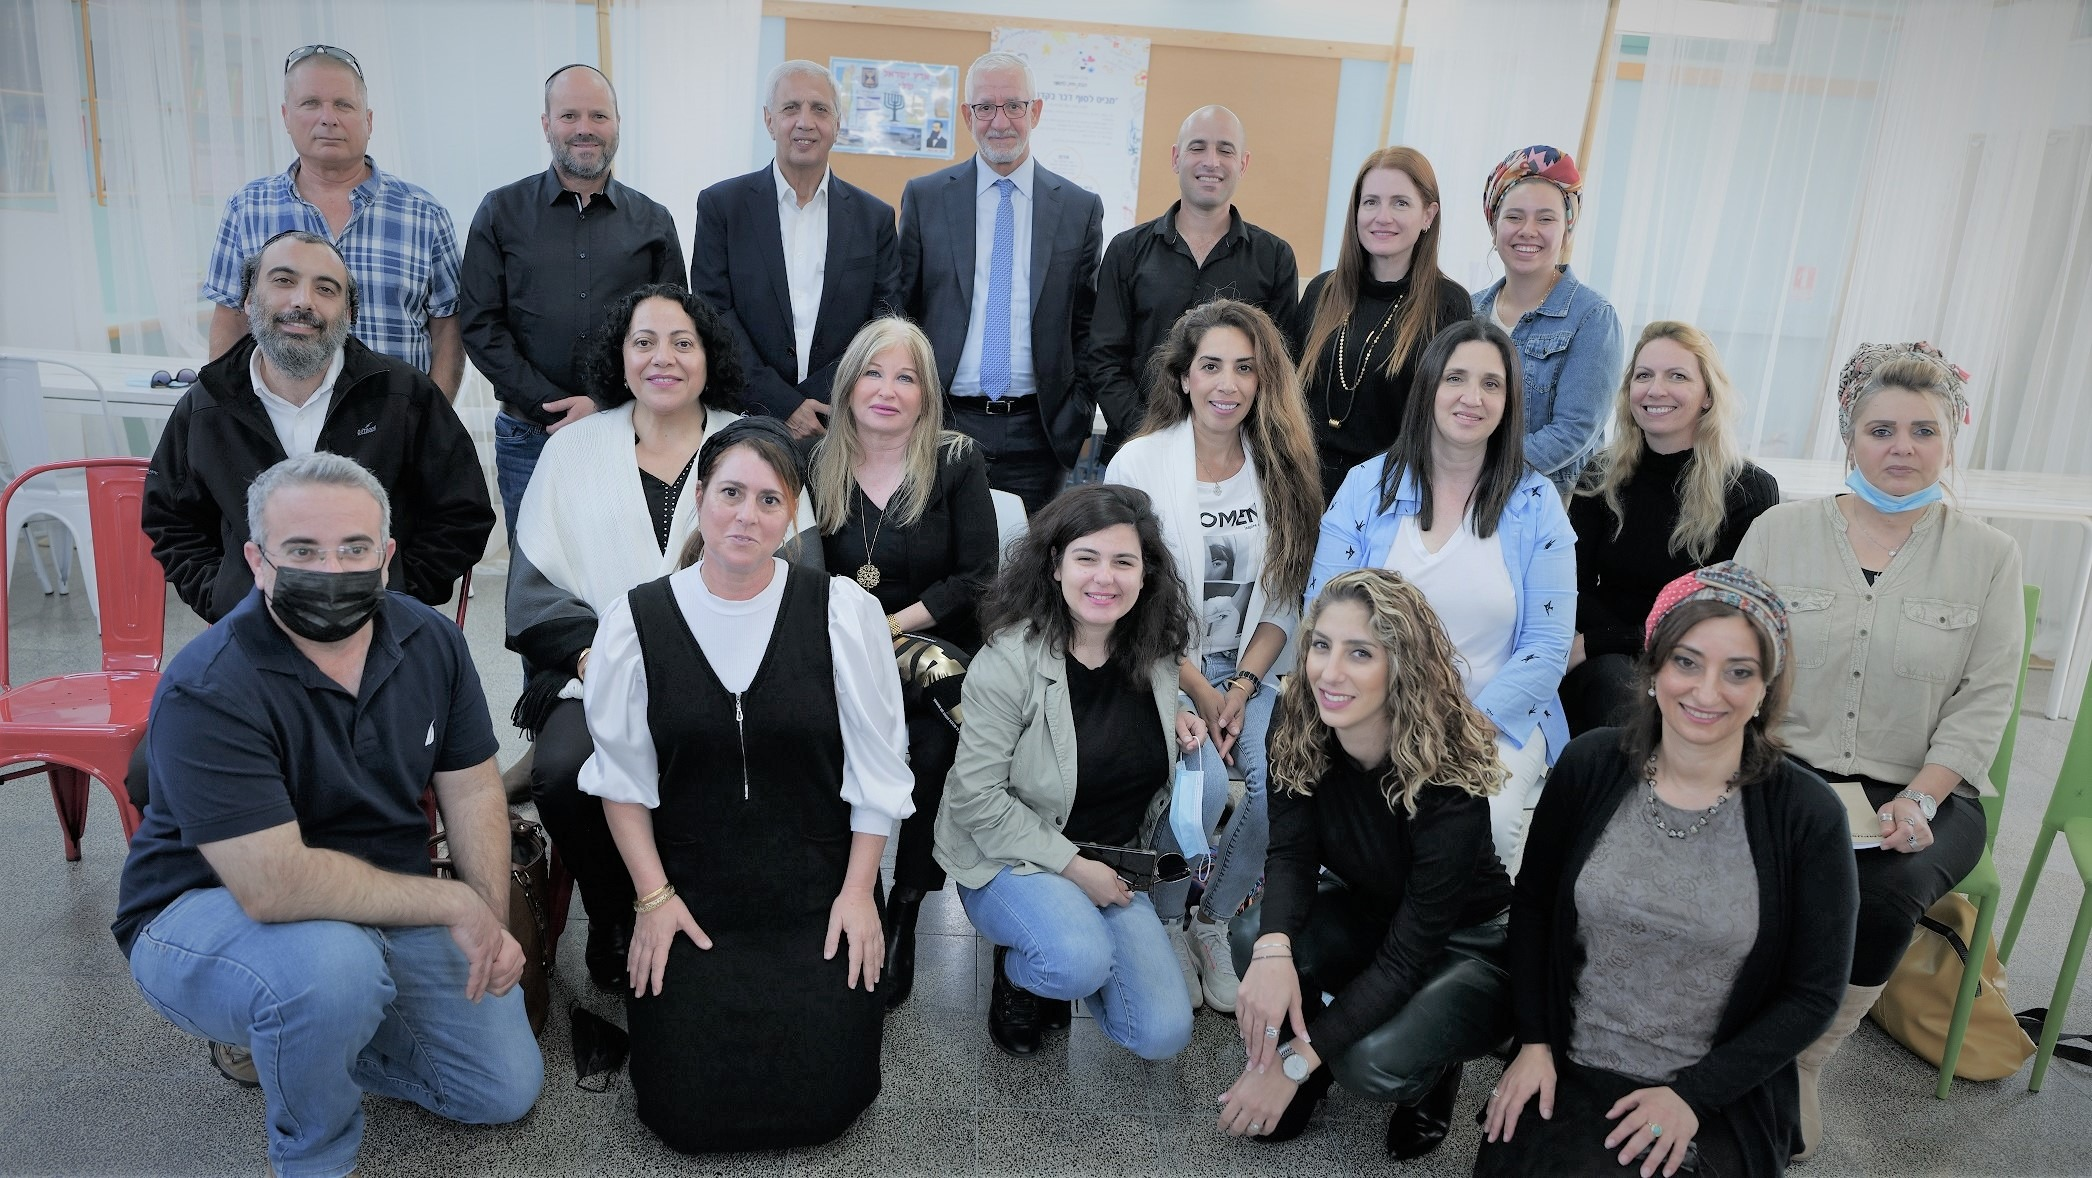 """The Menomadin Foundation """"Education Masterplan"""" in Tiberius: Haim Tab, Dr. Merav Galili, and Dr. Rami Sulimani with the city's education leaders."""